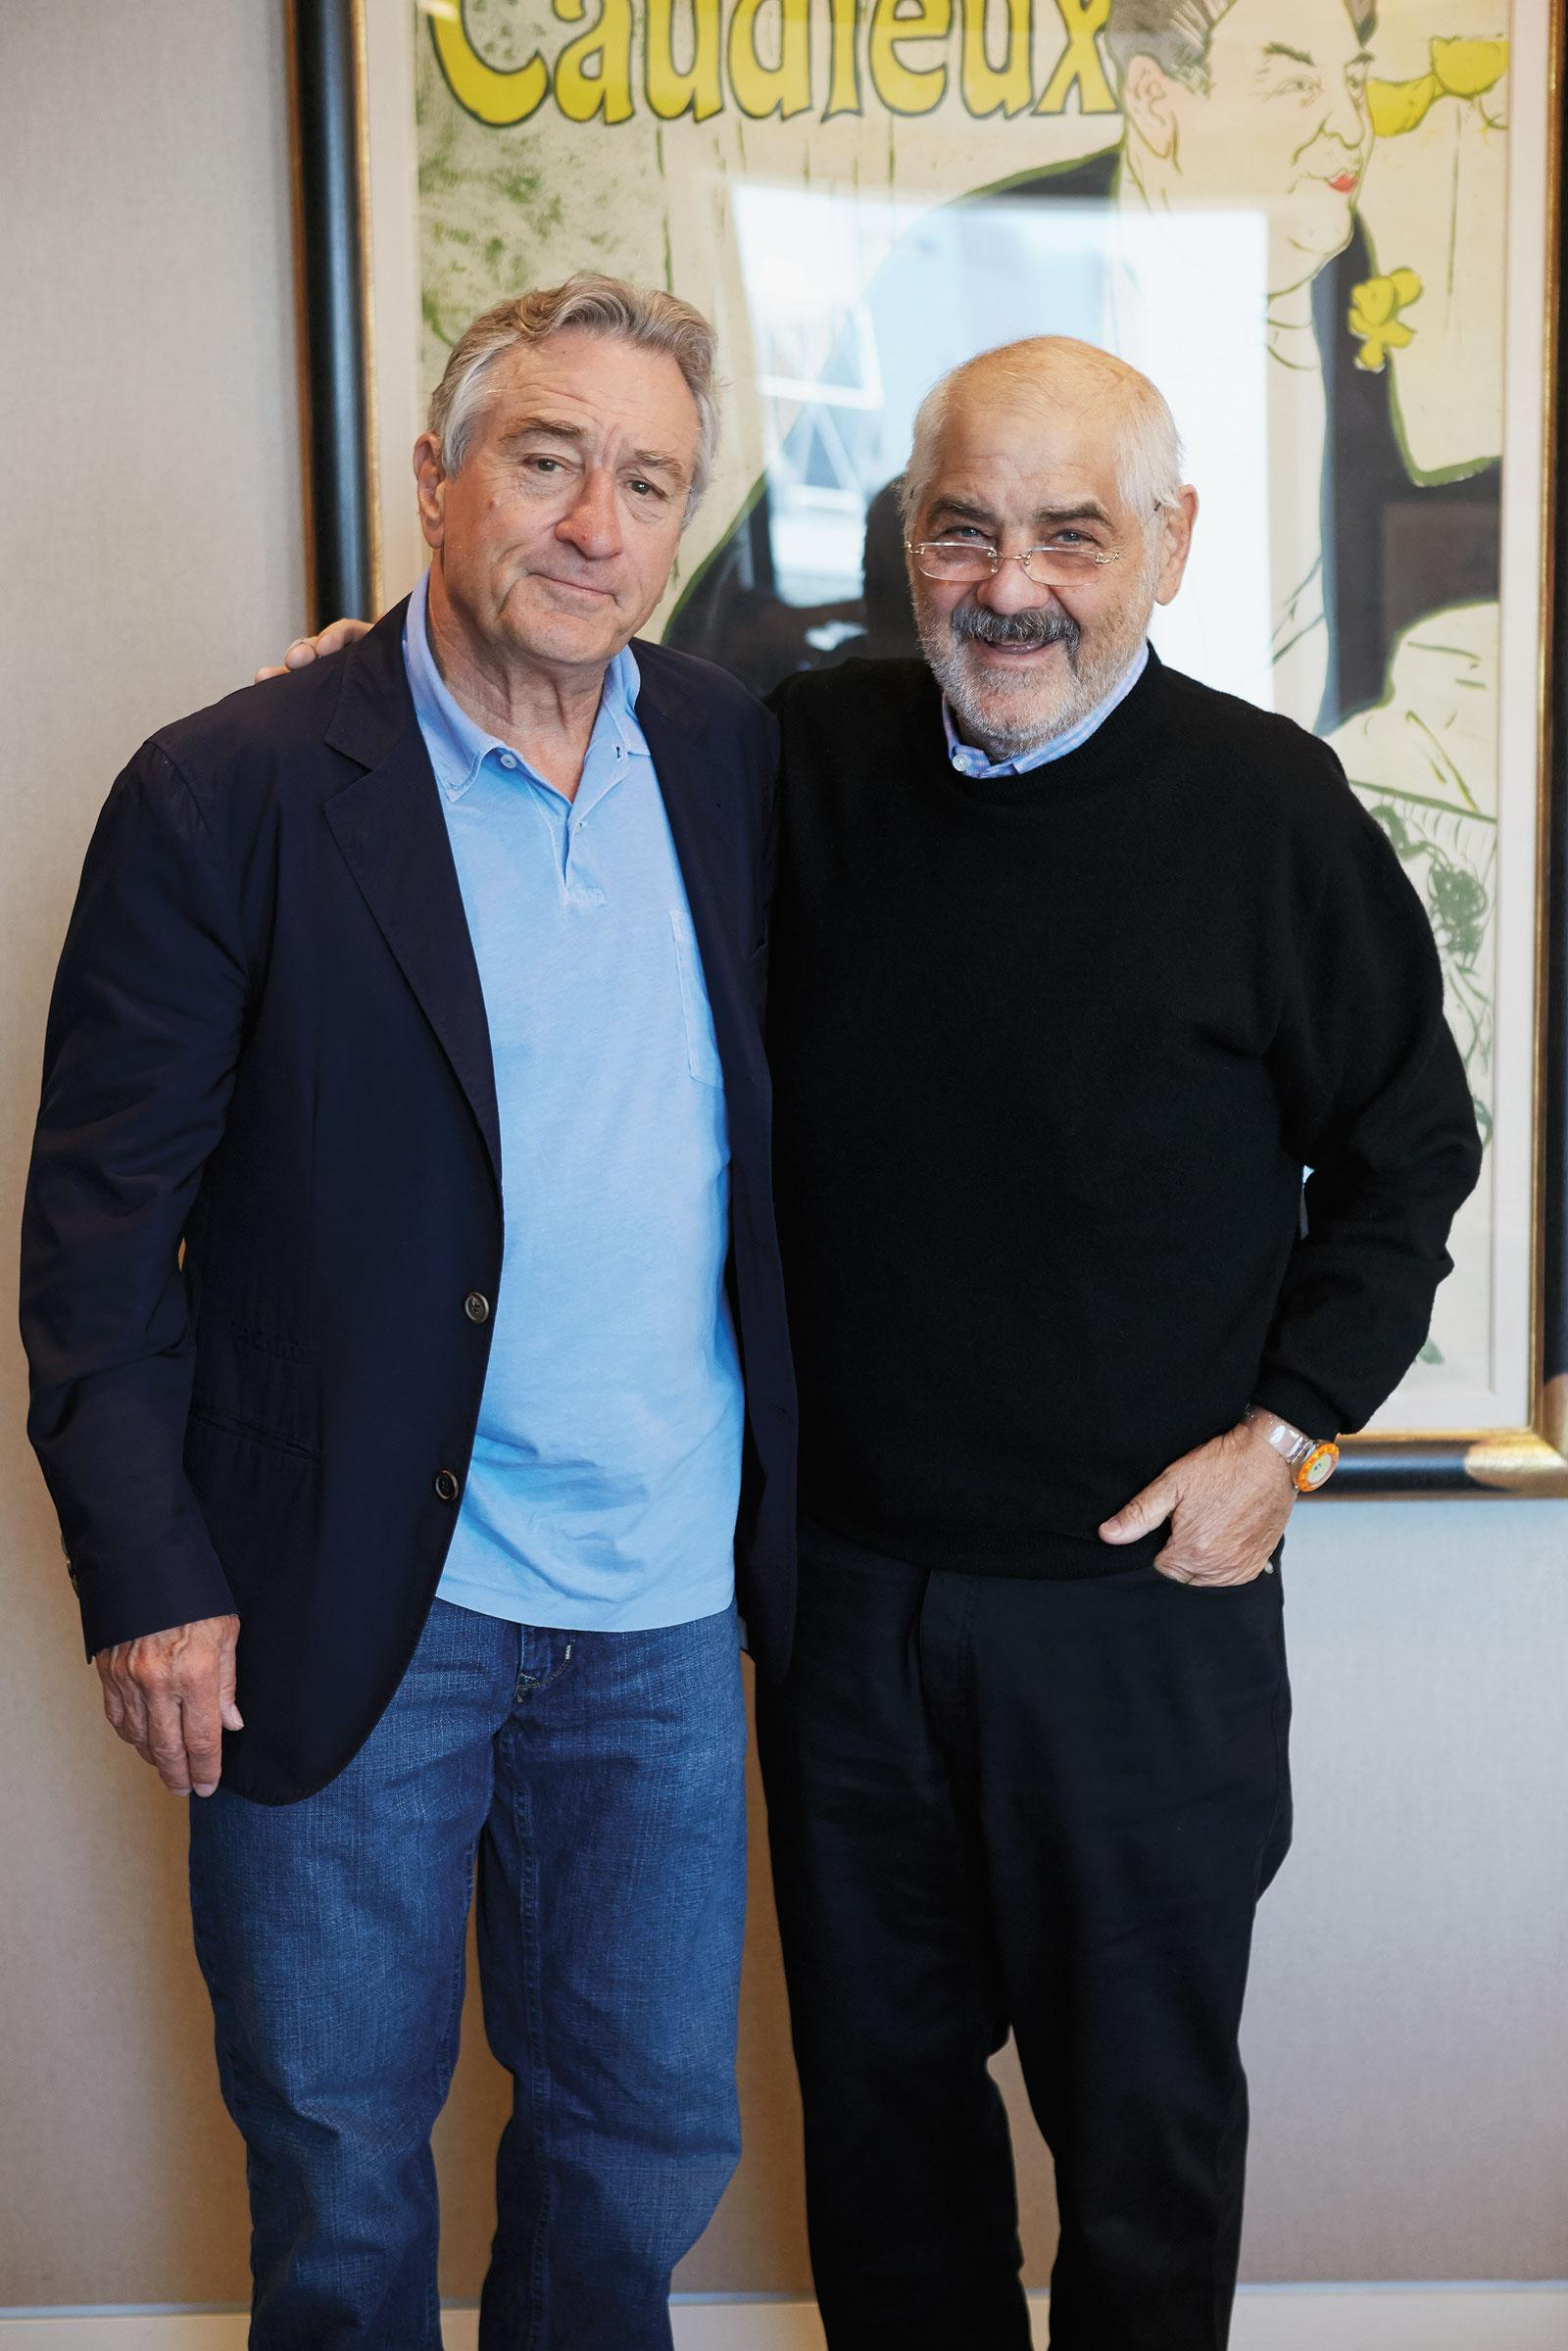 Marvin R. Shanken interviews Robert De Niro